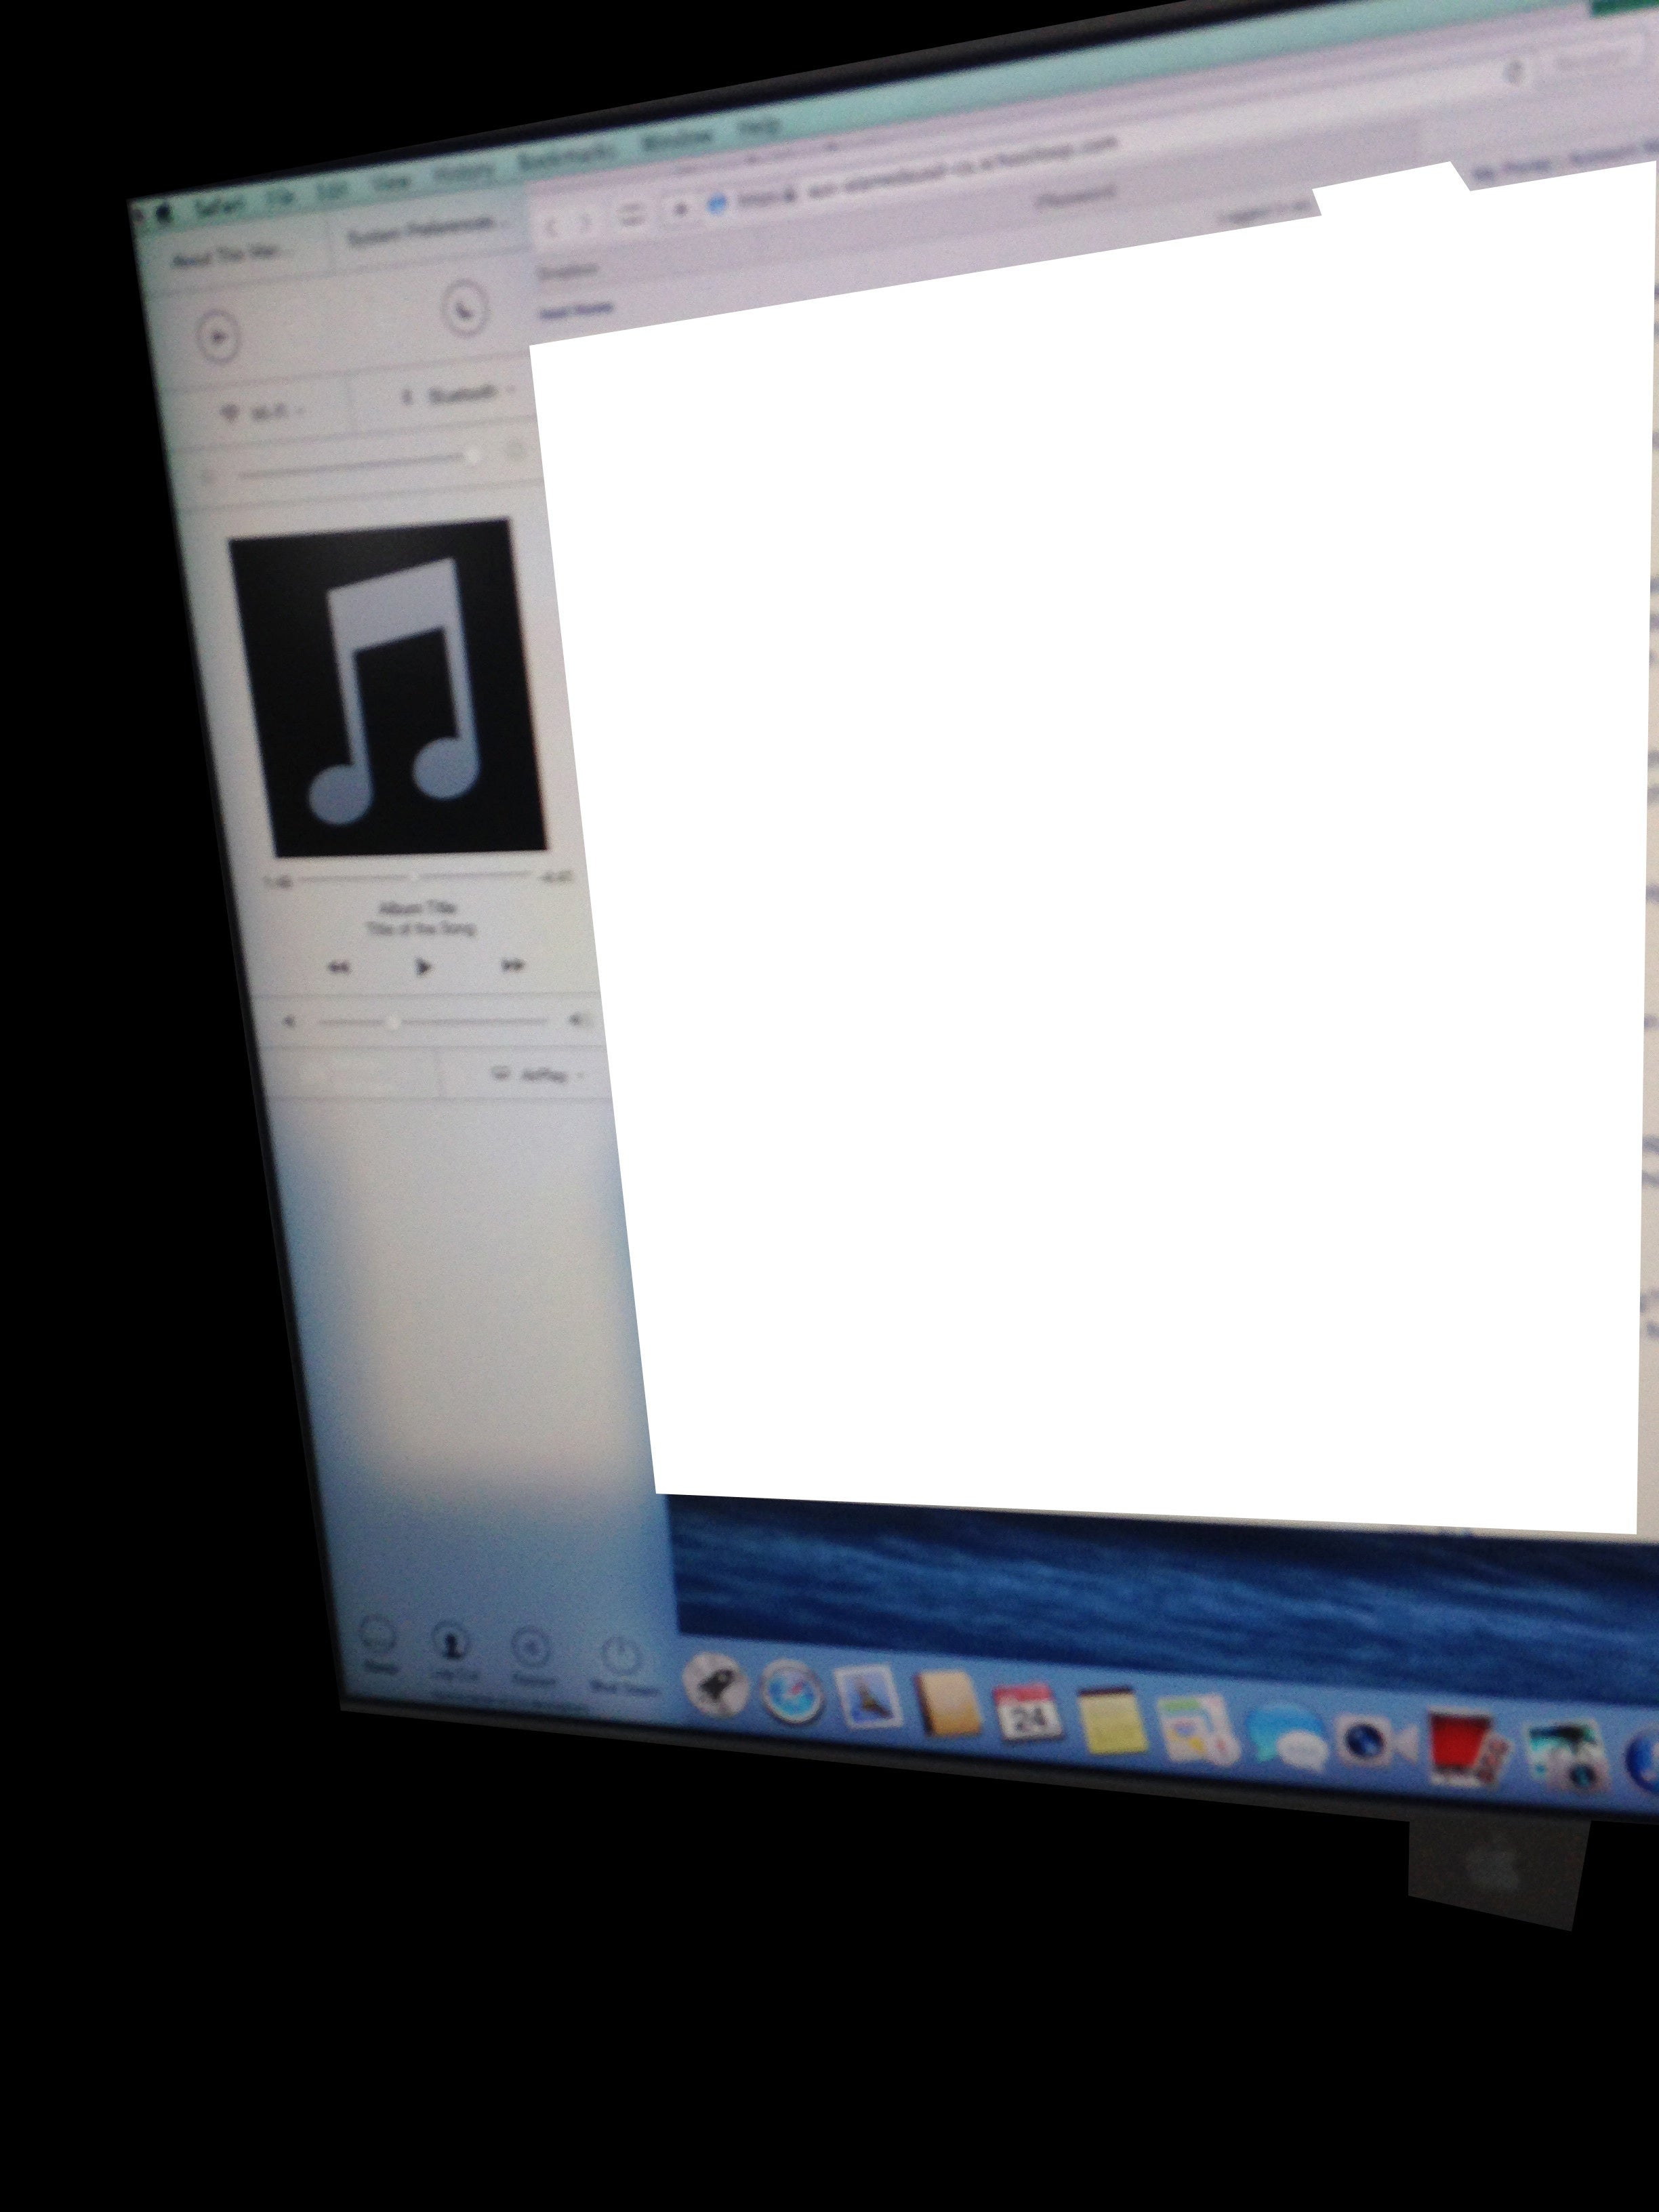 Rumour: Leaked OS X Images Could Reveal the iOS-Like Future of the Mac